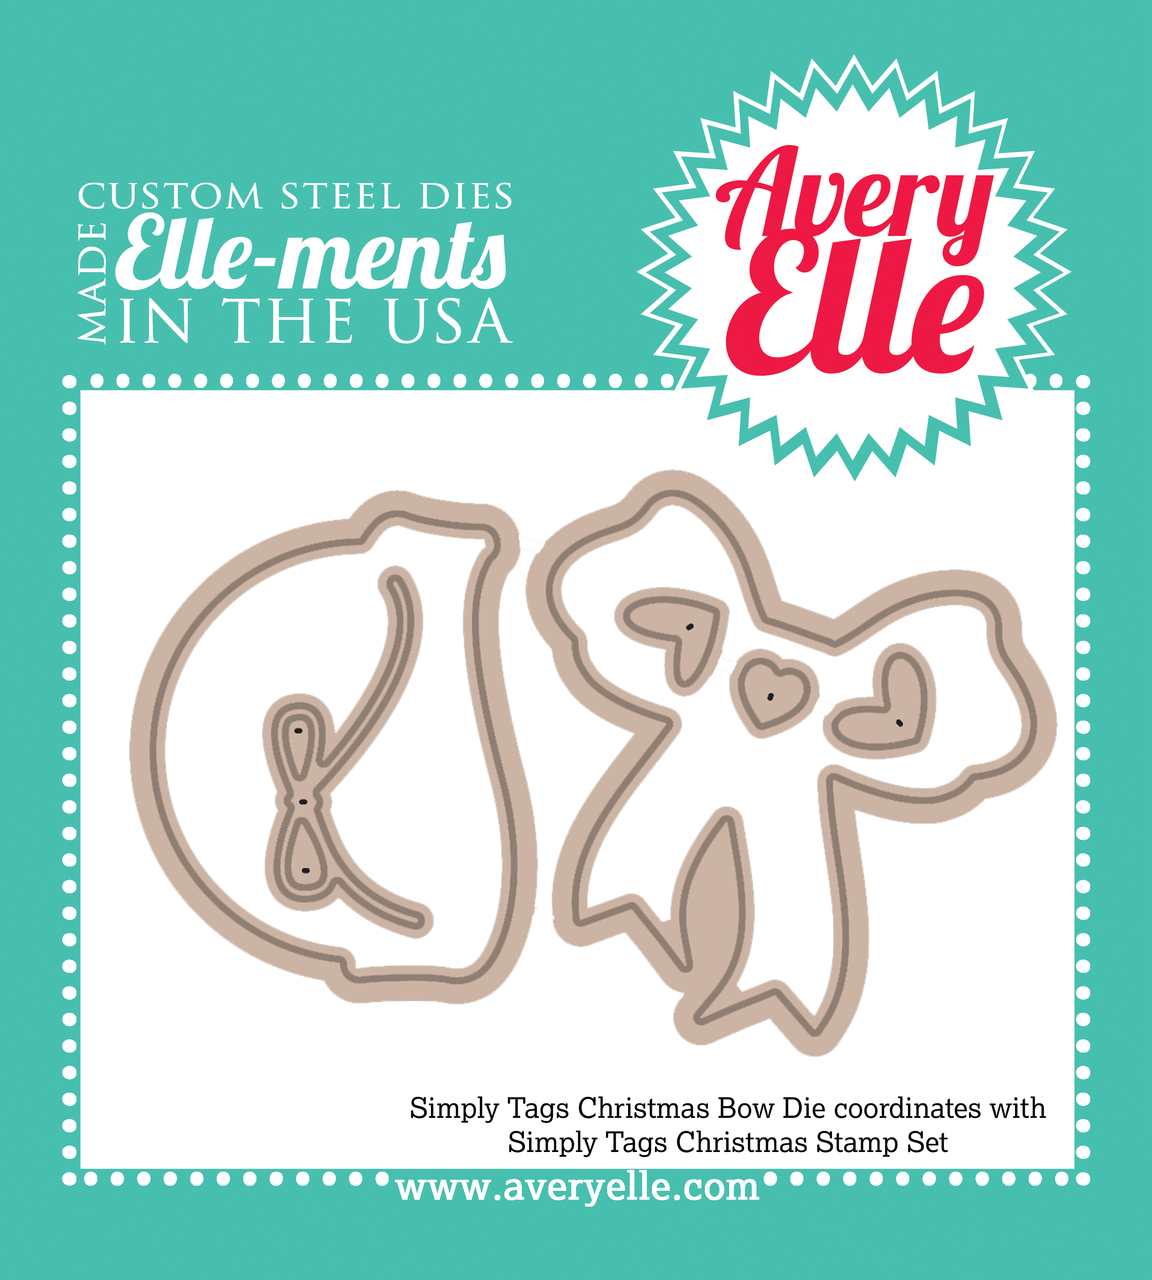 Our Simply Tags: Christmas Bow Elle-ments Custom Steel dies (designed by Nina Yang) are exclusive to Avery Elle.  These premium steel dies coordinate with our Simply Tags: Christmas clear stamp set and are proudly made in the USA.